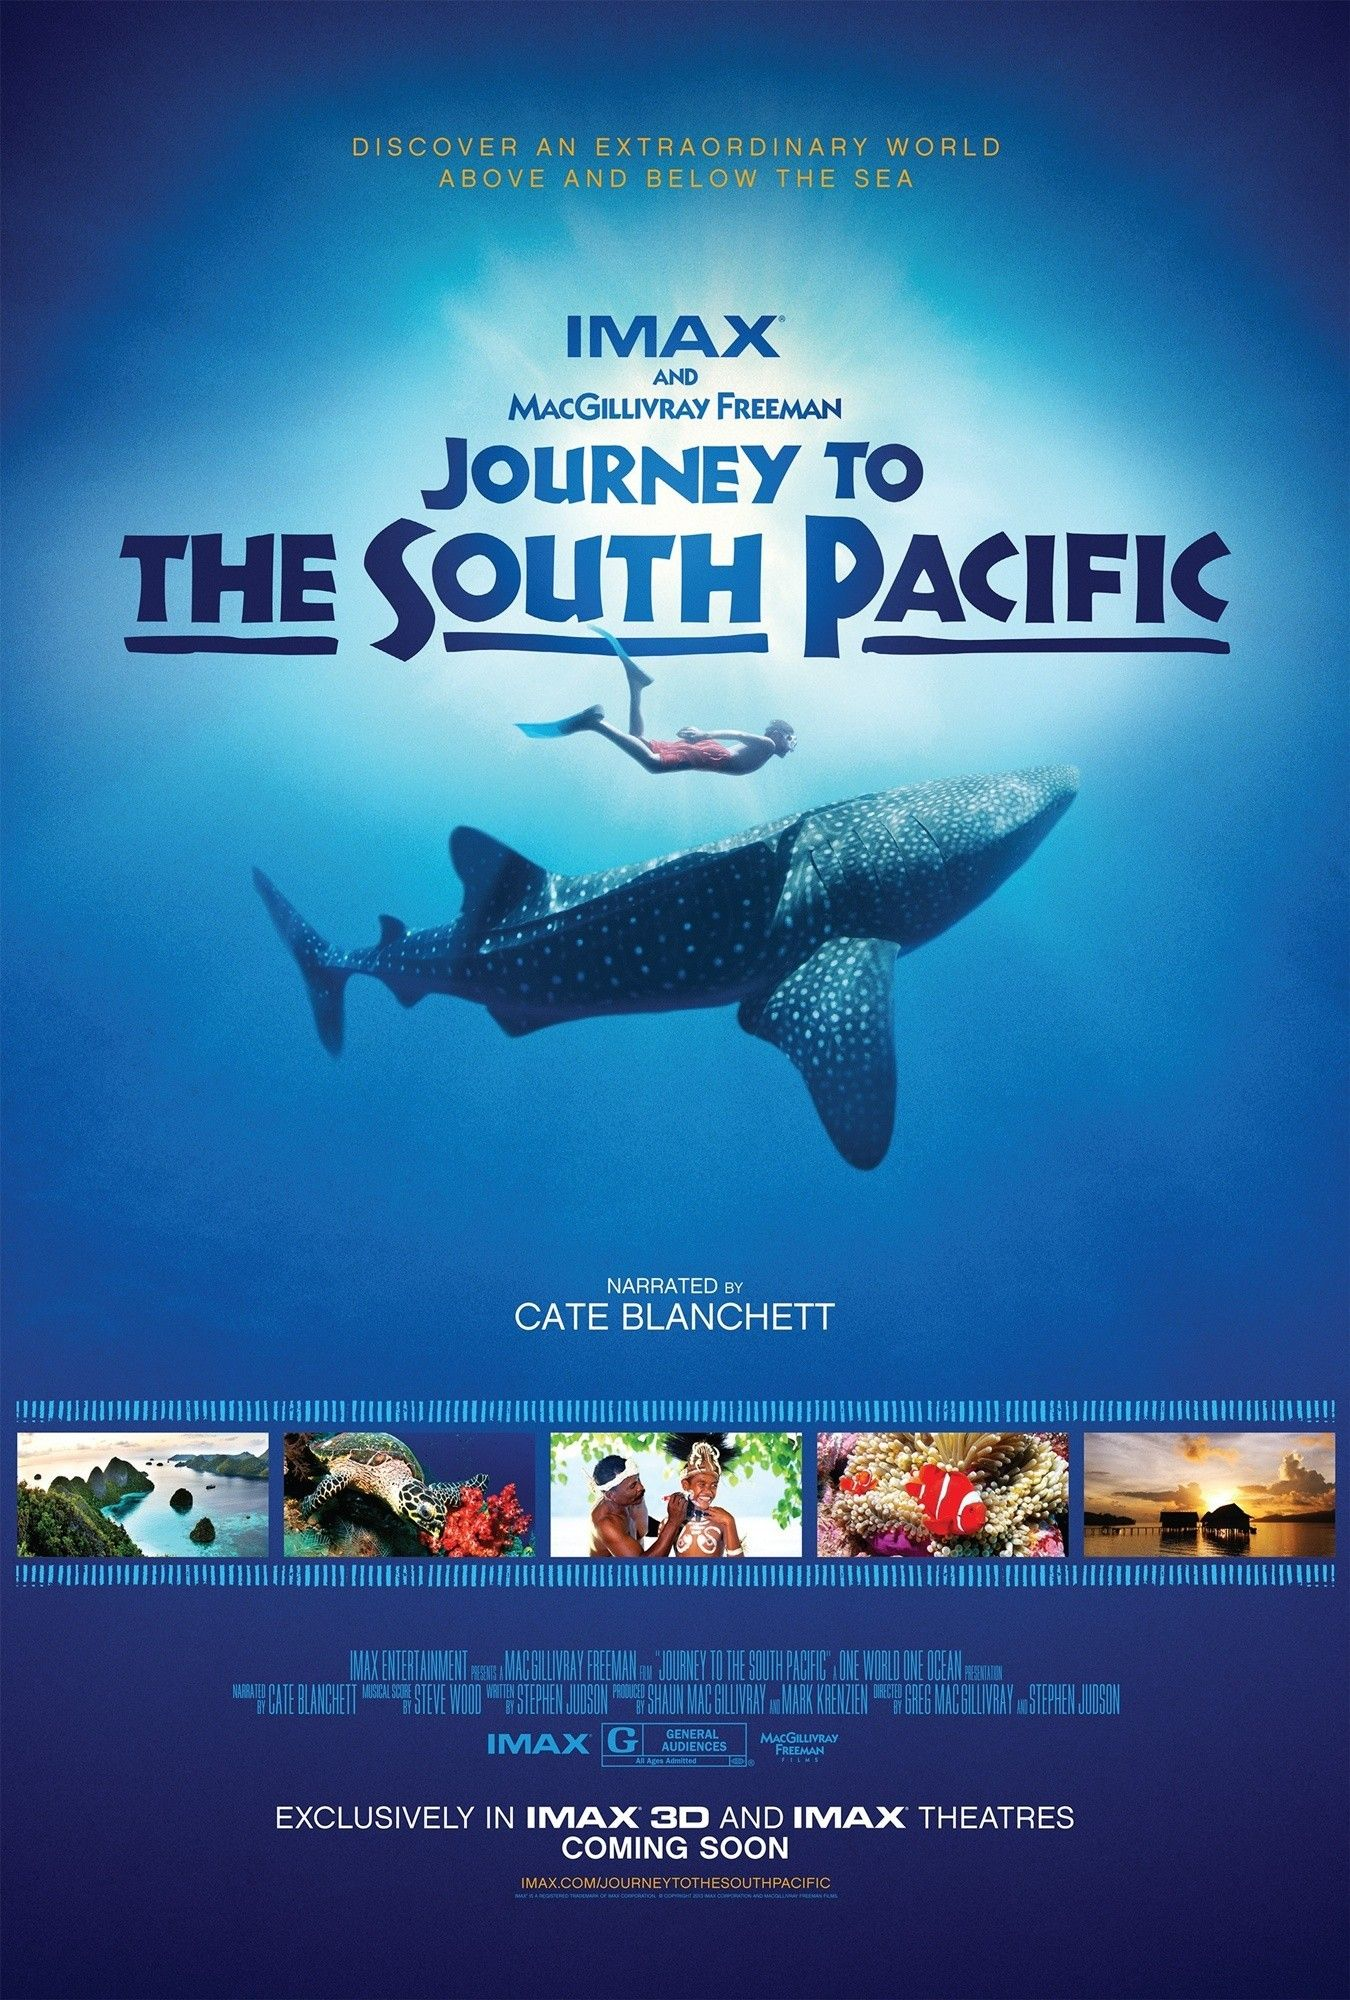 Poster of IMAX Entertainment's Journey to the South Pacific (2013)